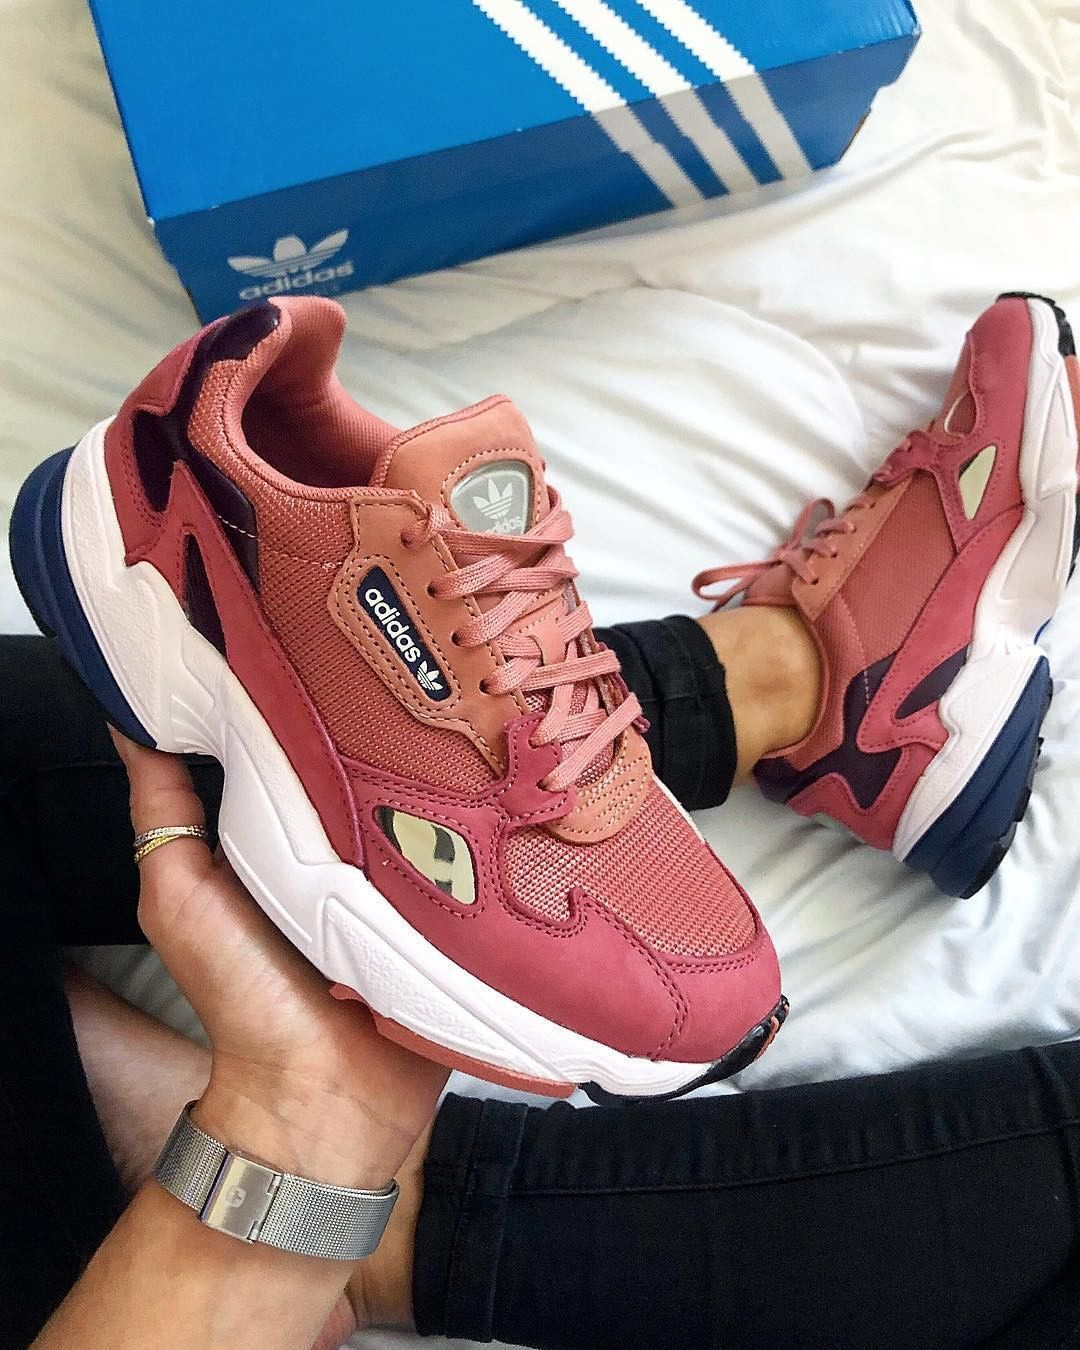 huge selection of 42c5a fe3a5 New 2018 adidas Falcon Shoes - Pink. The Falcon takes inspiration from 90s  running designs and the carefree, rebellious spirit of that decades art,  ...